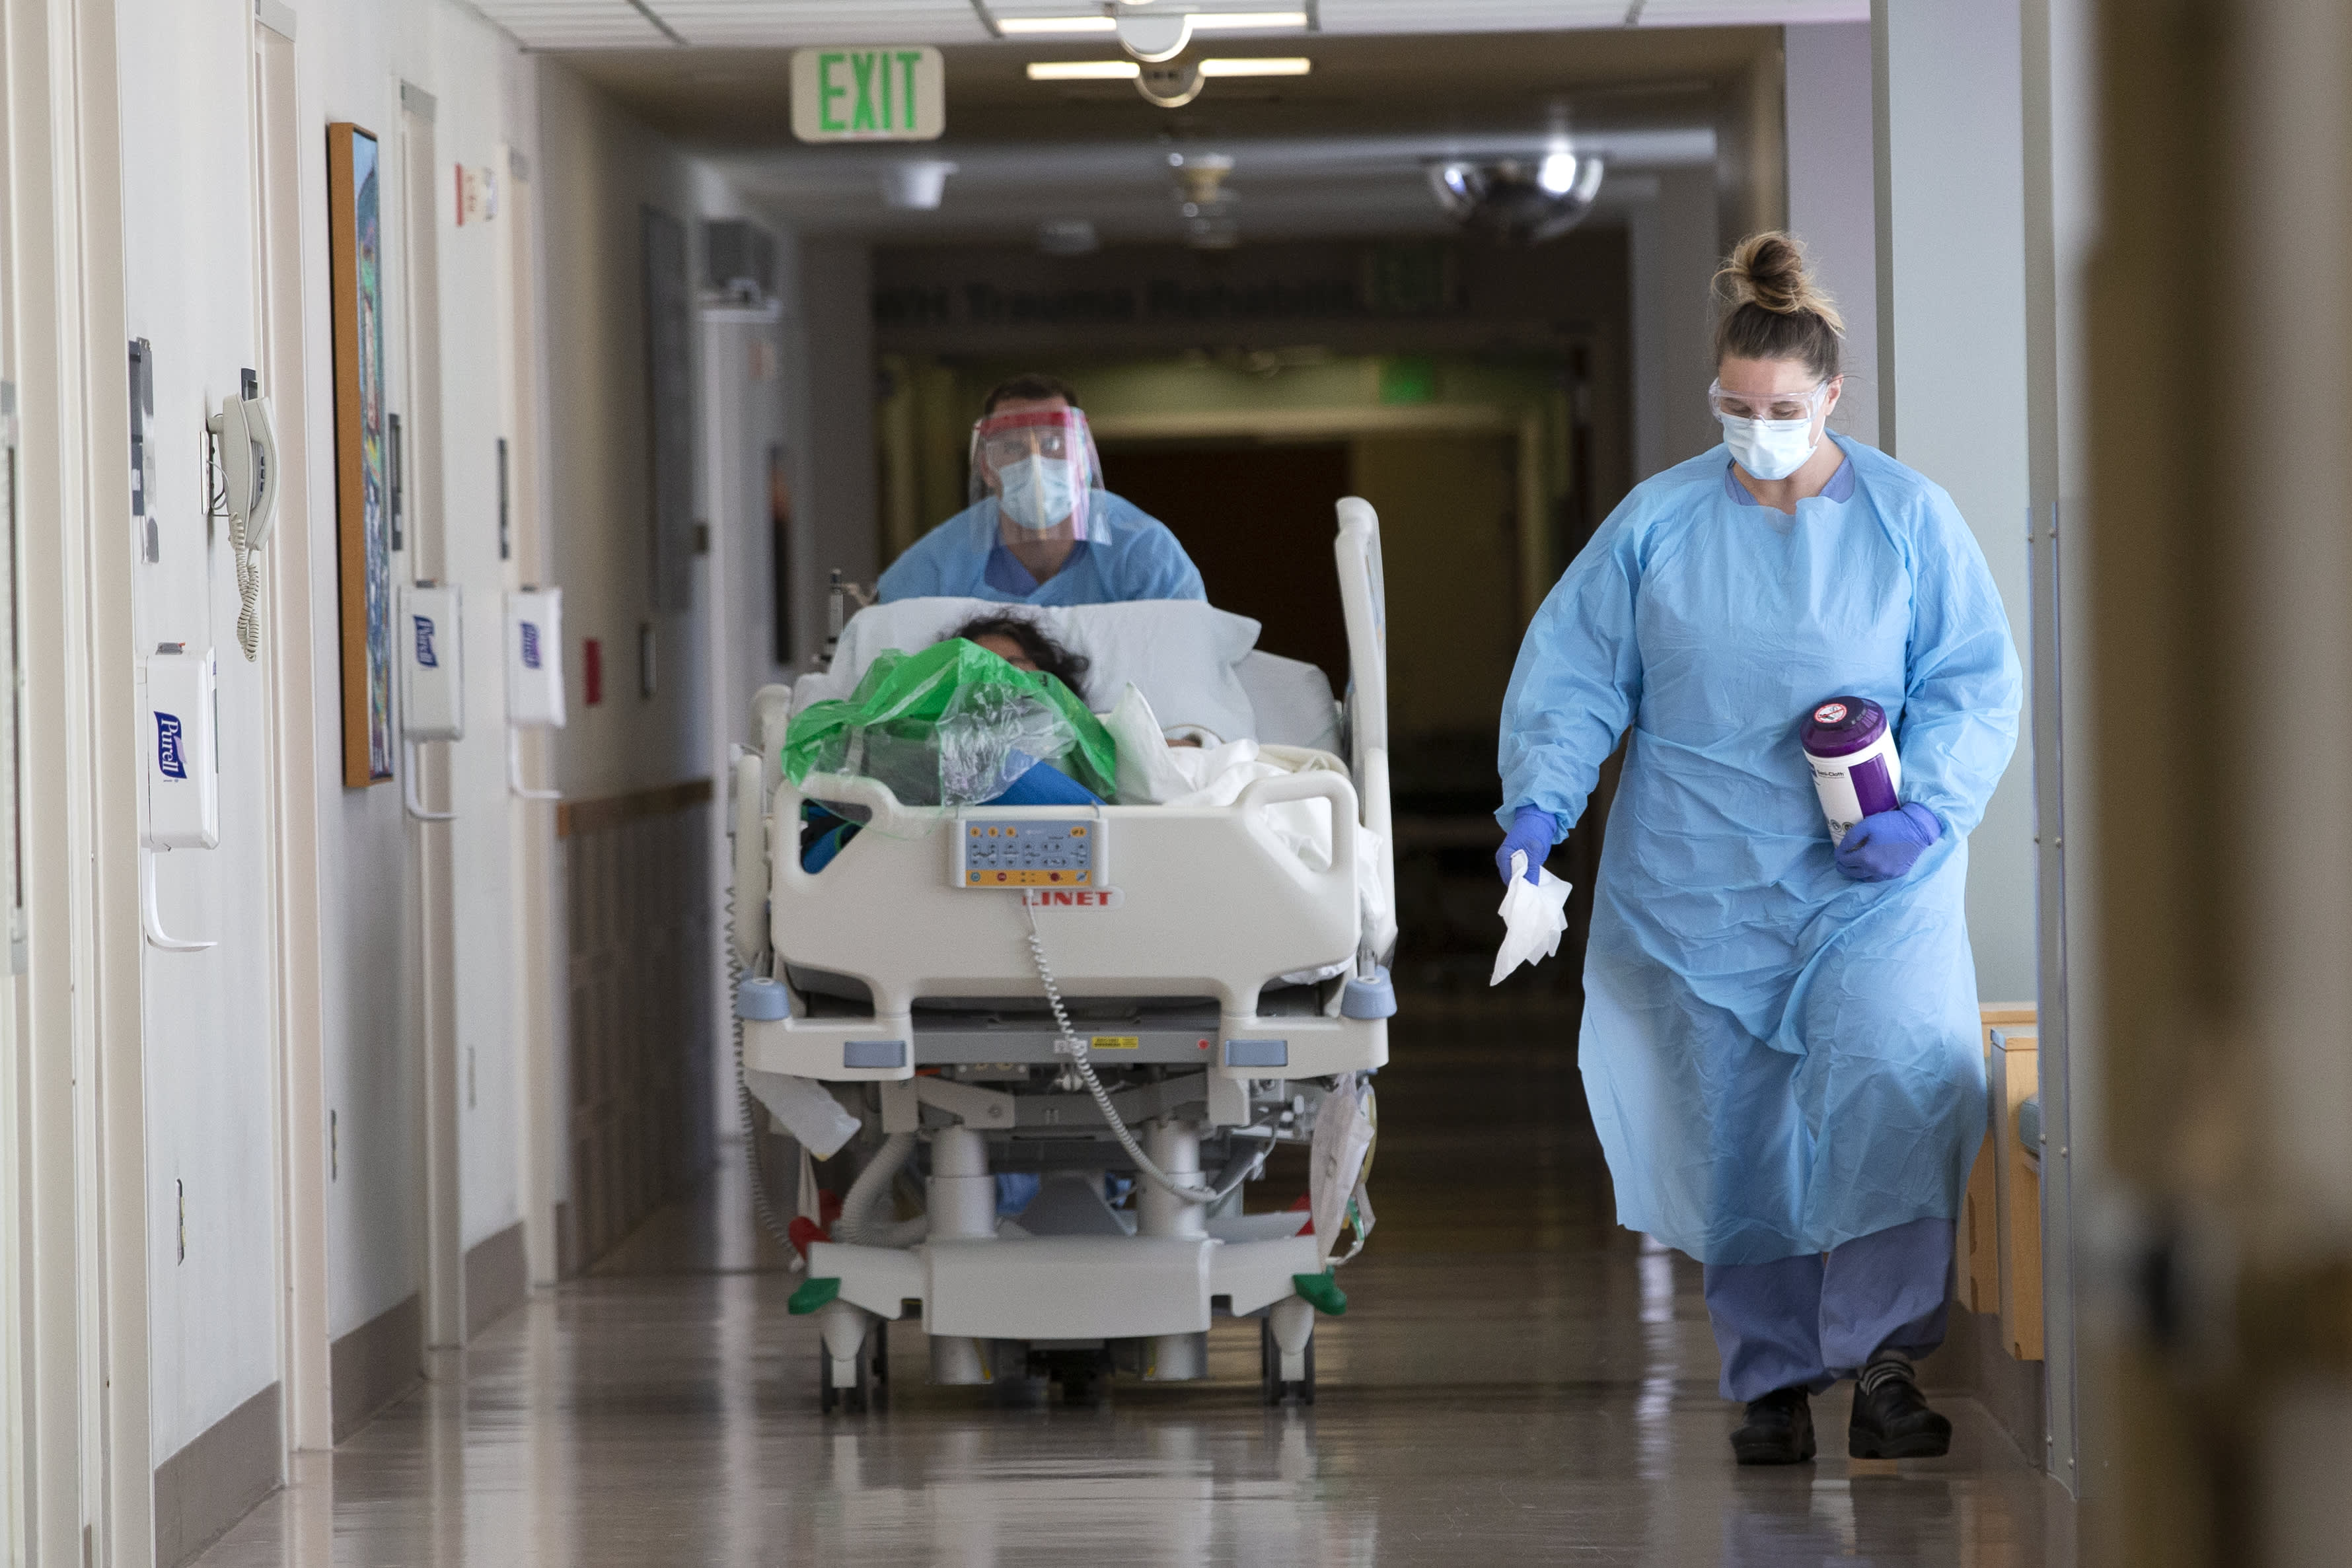 Washington state officials say they're short on hospital staff and running out of ICU beds as Covid resurges